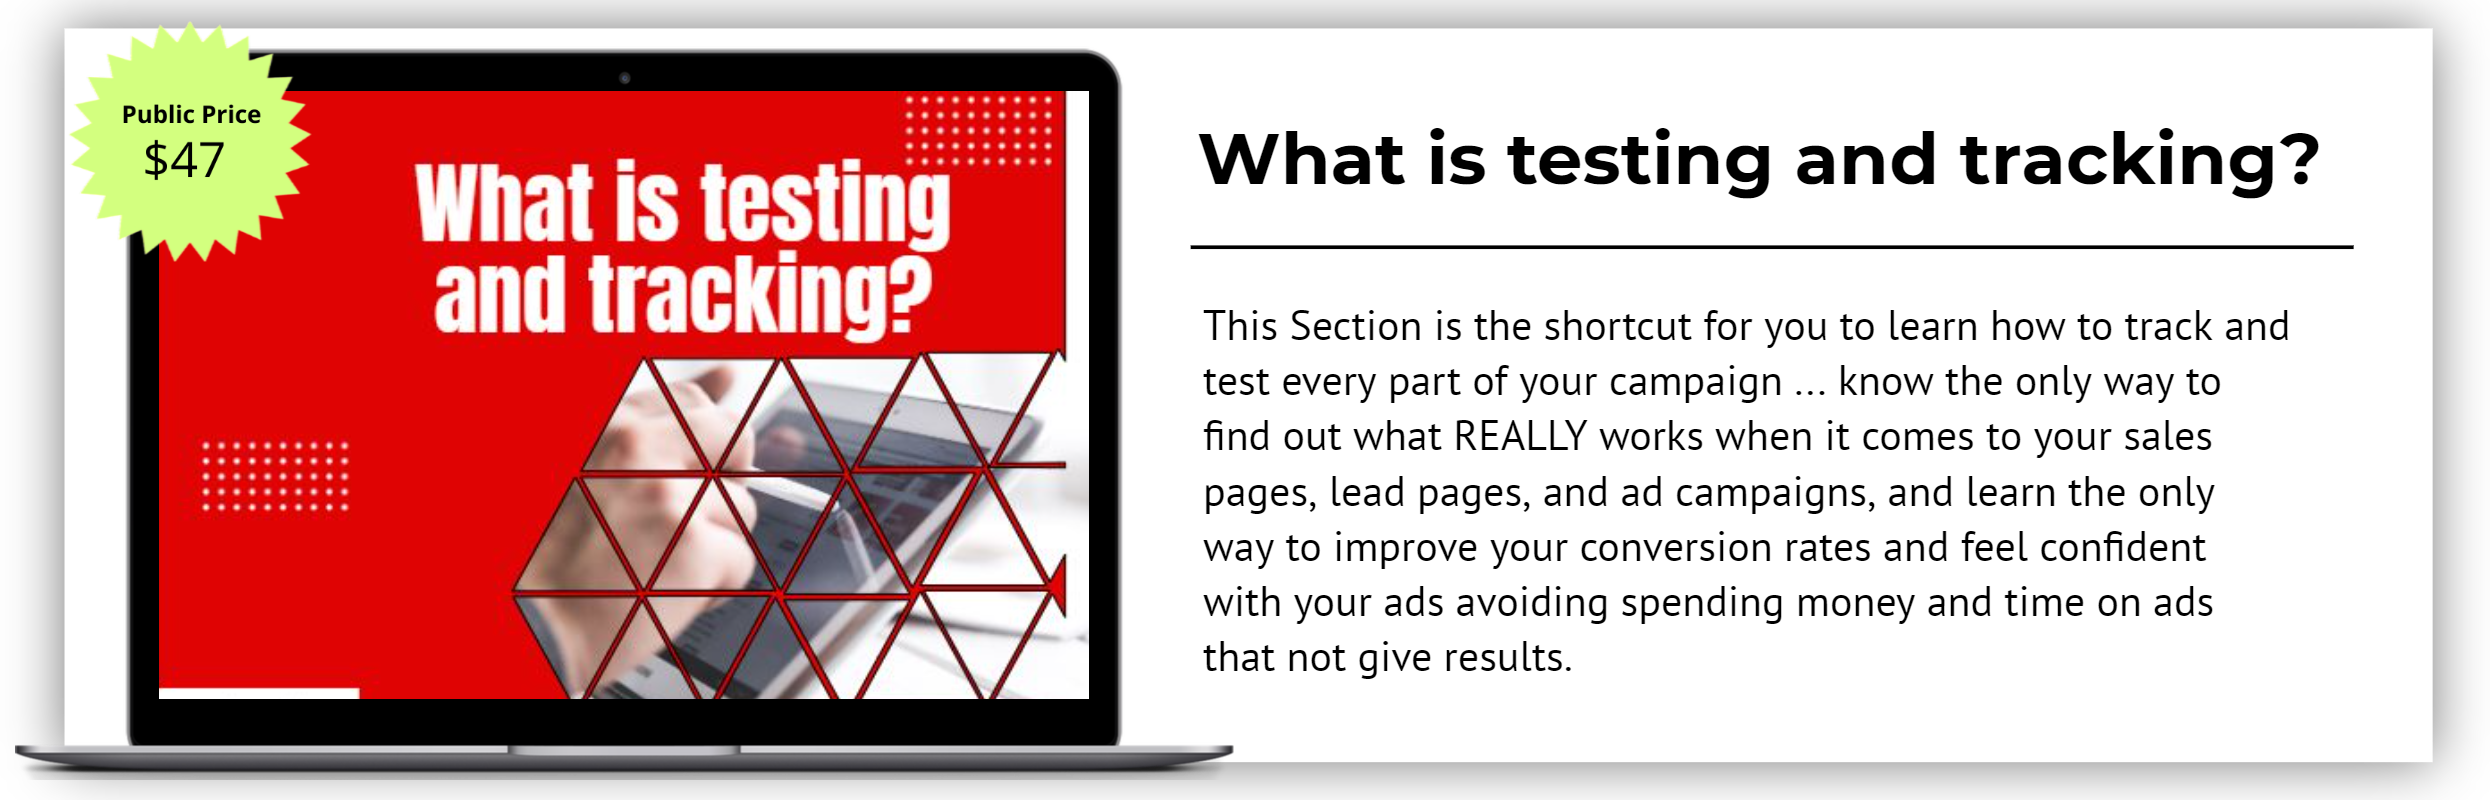 What is testing and tracking_